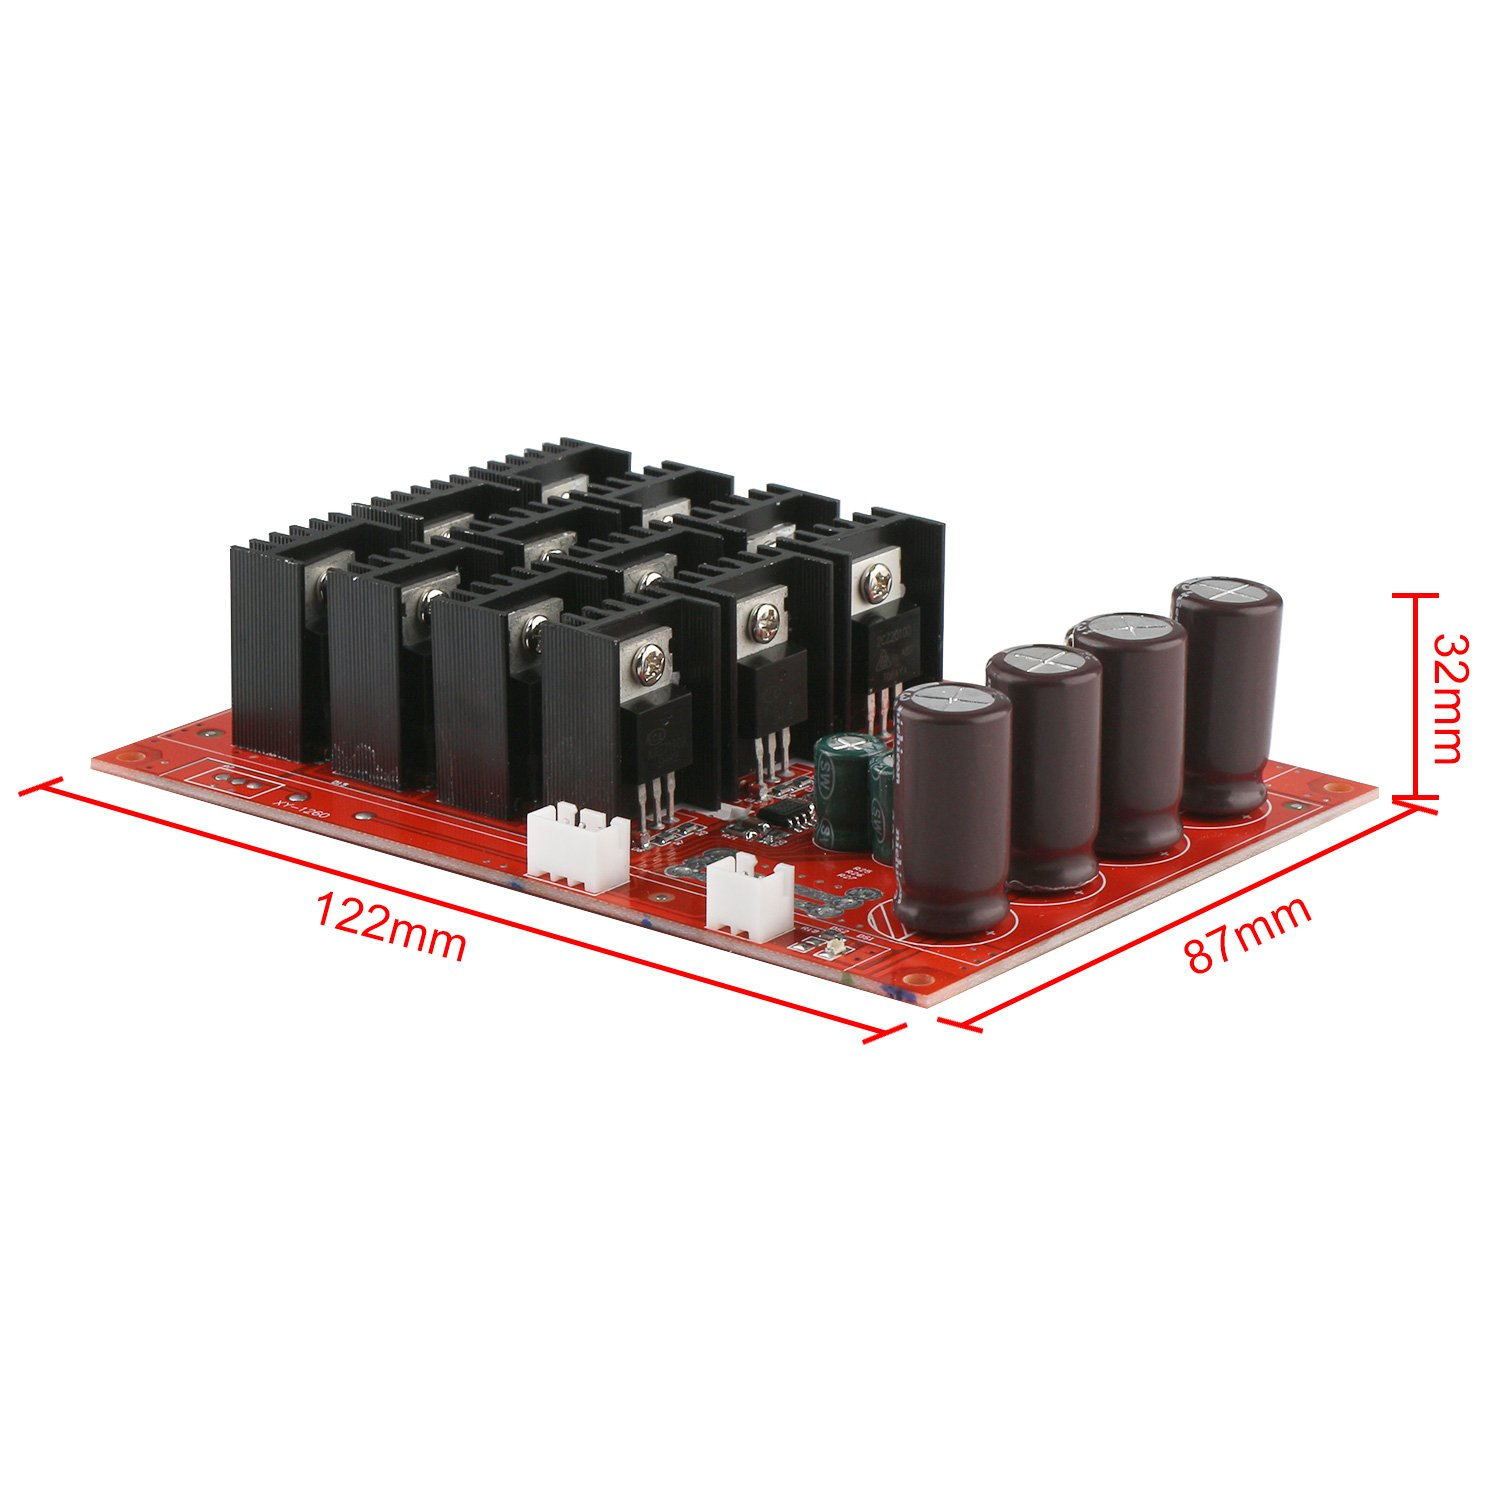 Motor Speed Control Board, DROK DC 10-50V 60A High Power Motor Speed Controller PWM HHO Driver Controller Module 12V 24V 48V 3000W Extension Cord with Switch by DROK (Image #7)